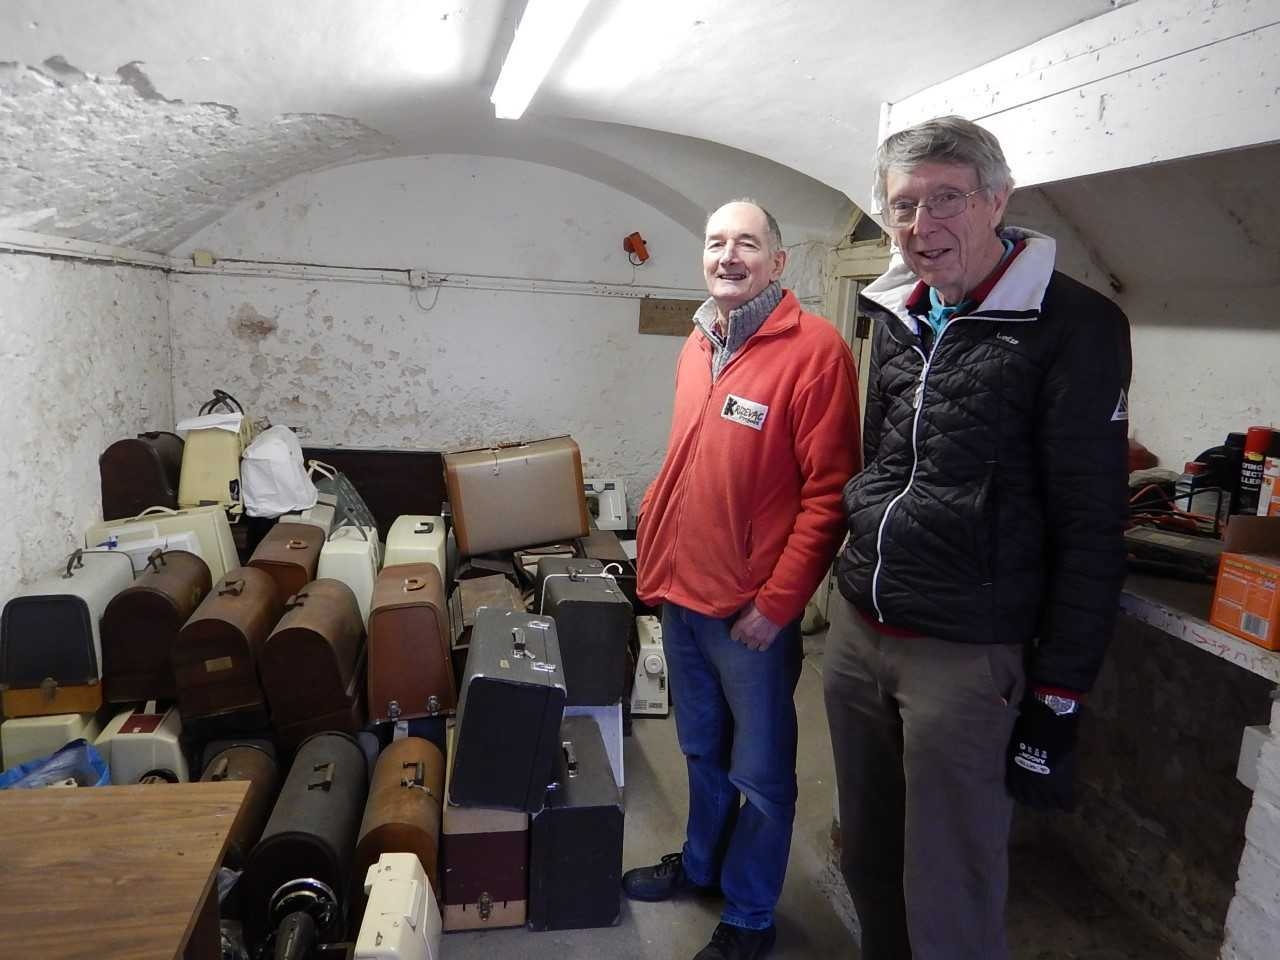 Machines in the cellar at Llannerch Hall, where one of the rotary members lives. In the photo are Joe from Krizevac (in red top) and Alex Wilson from the rotary. This time the project has been coordinated by Alex Wilson who is the chair of the rotary's